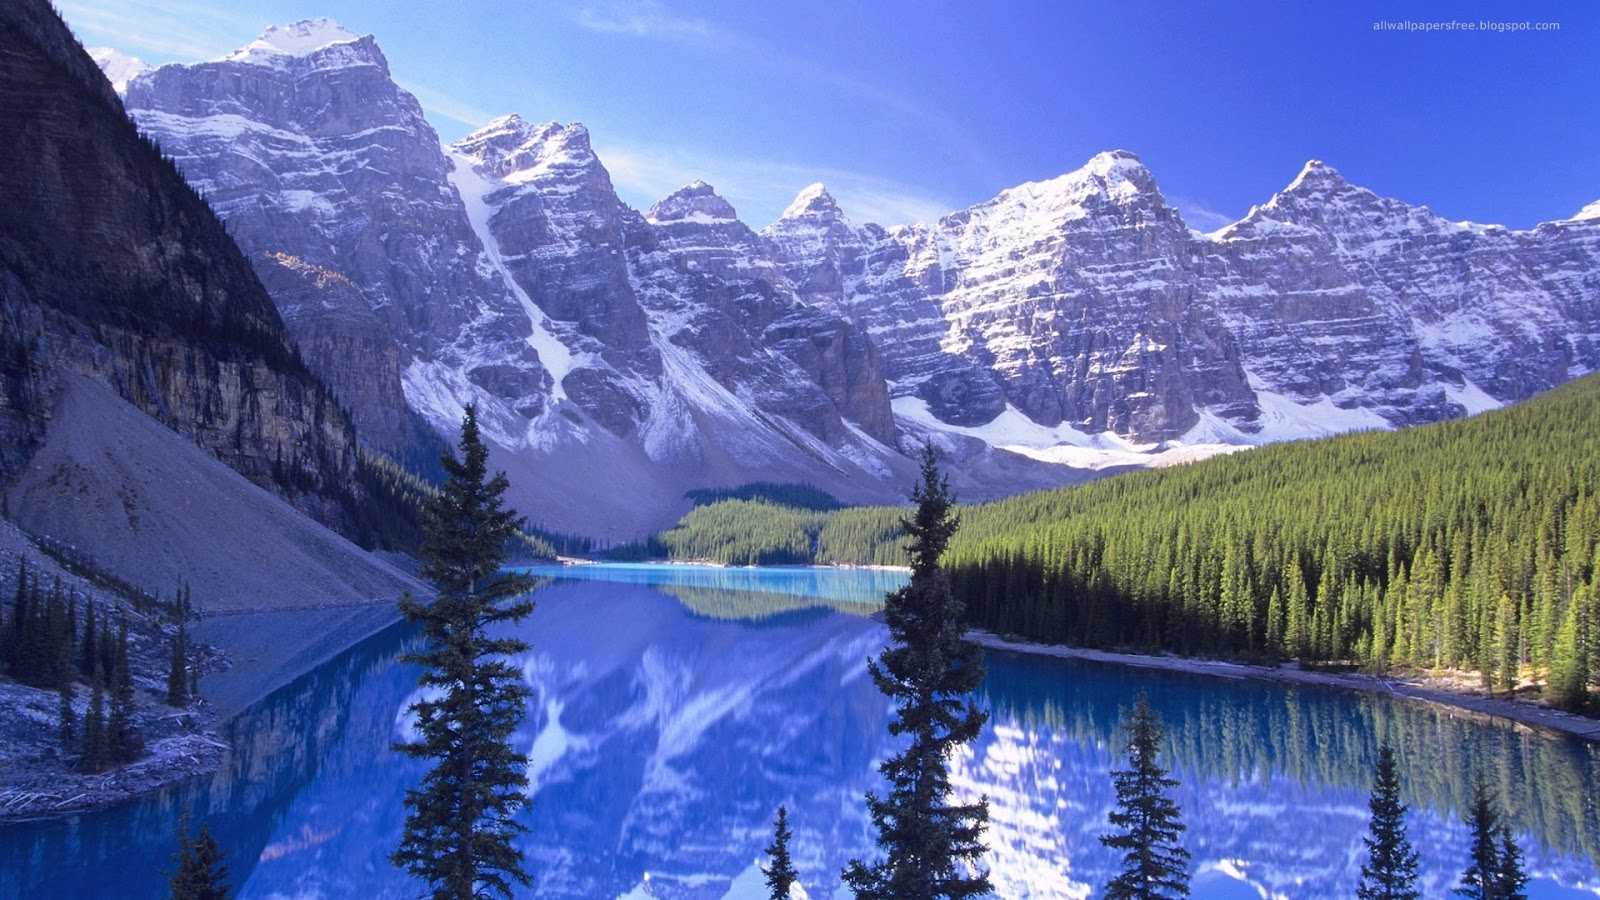 Hd wallpapers high quality wallpapers 3d wallpapers - Background pictures of nature for desktop ...